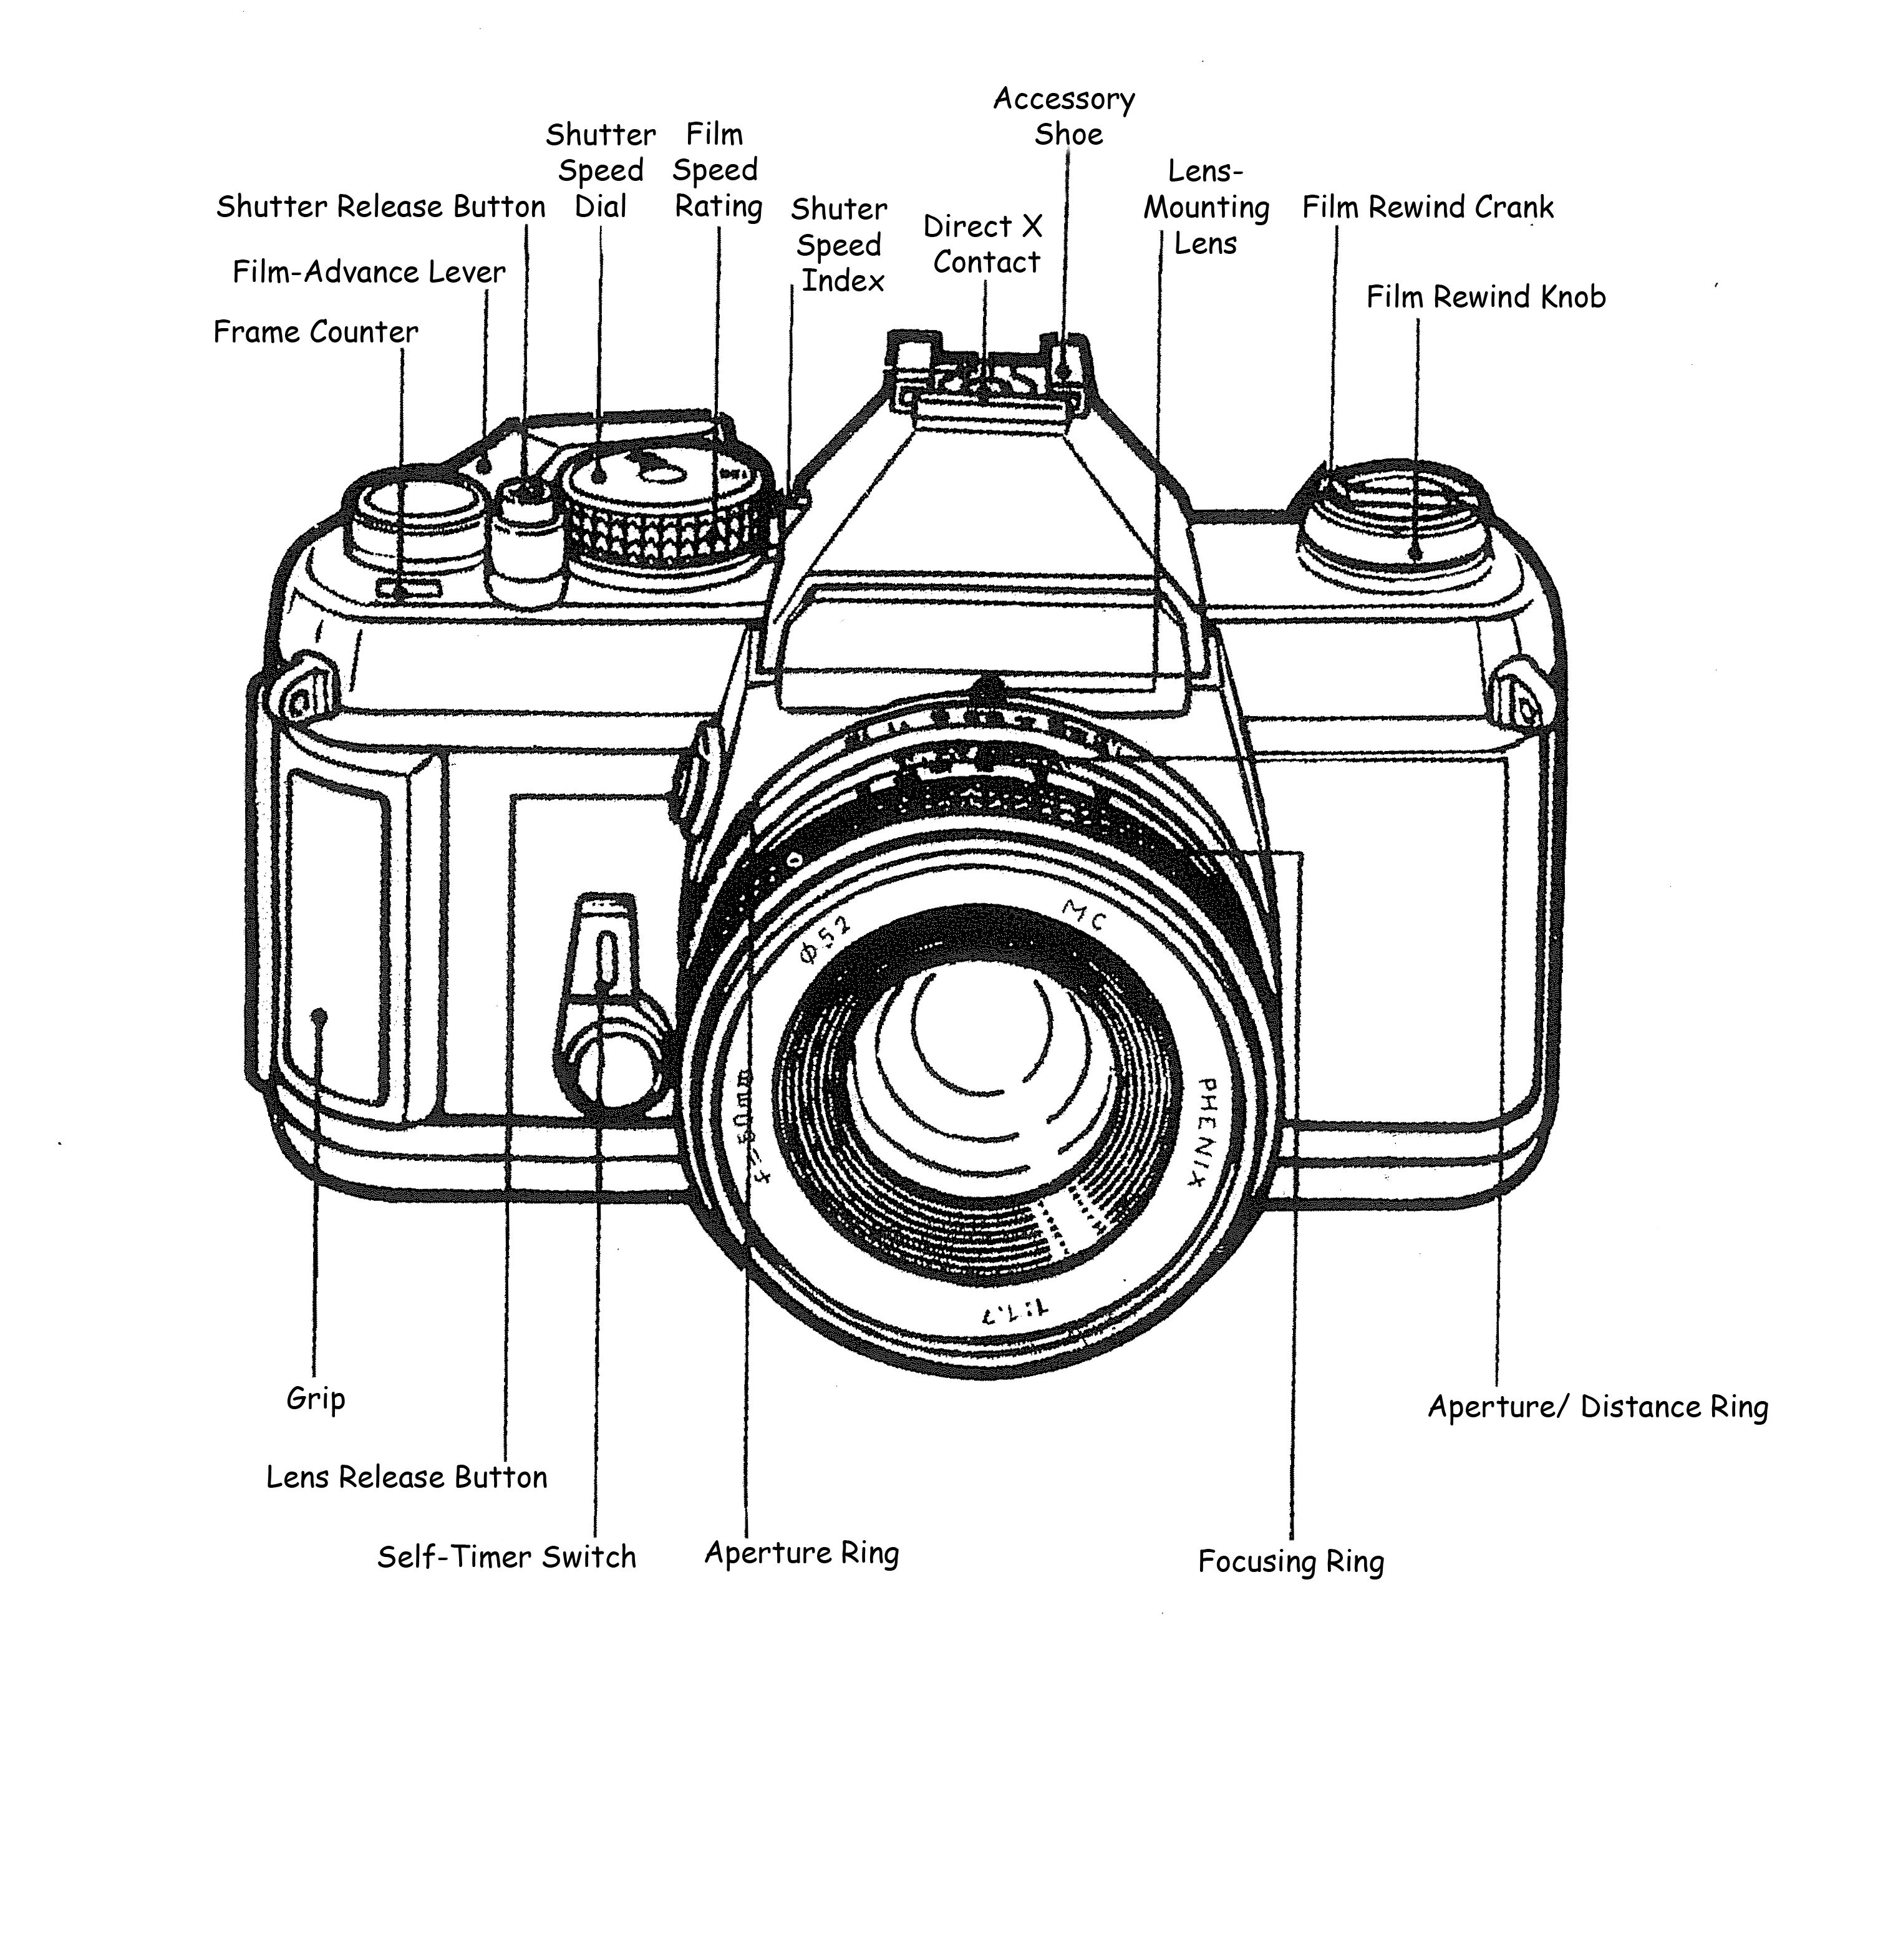 Slr Camera Diagram Ge Kv2c Multifunction Meter Fitzall Wiring With Labels Hs Photography Pinterest School And 101